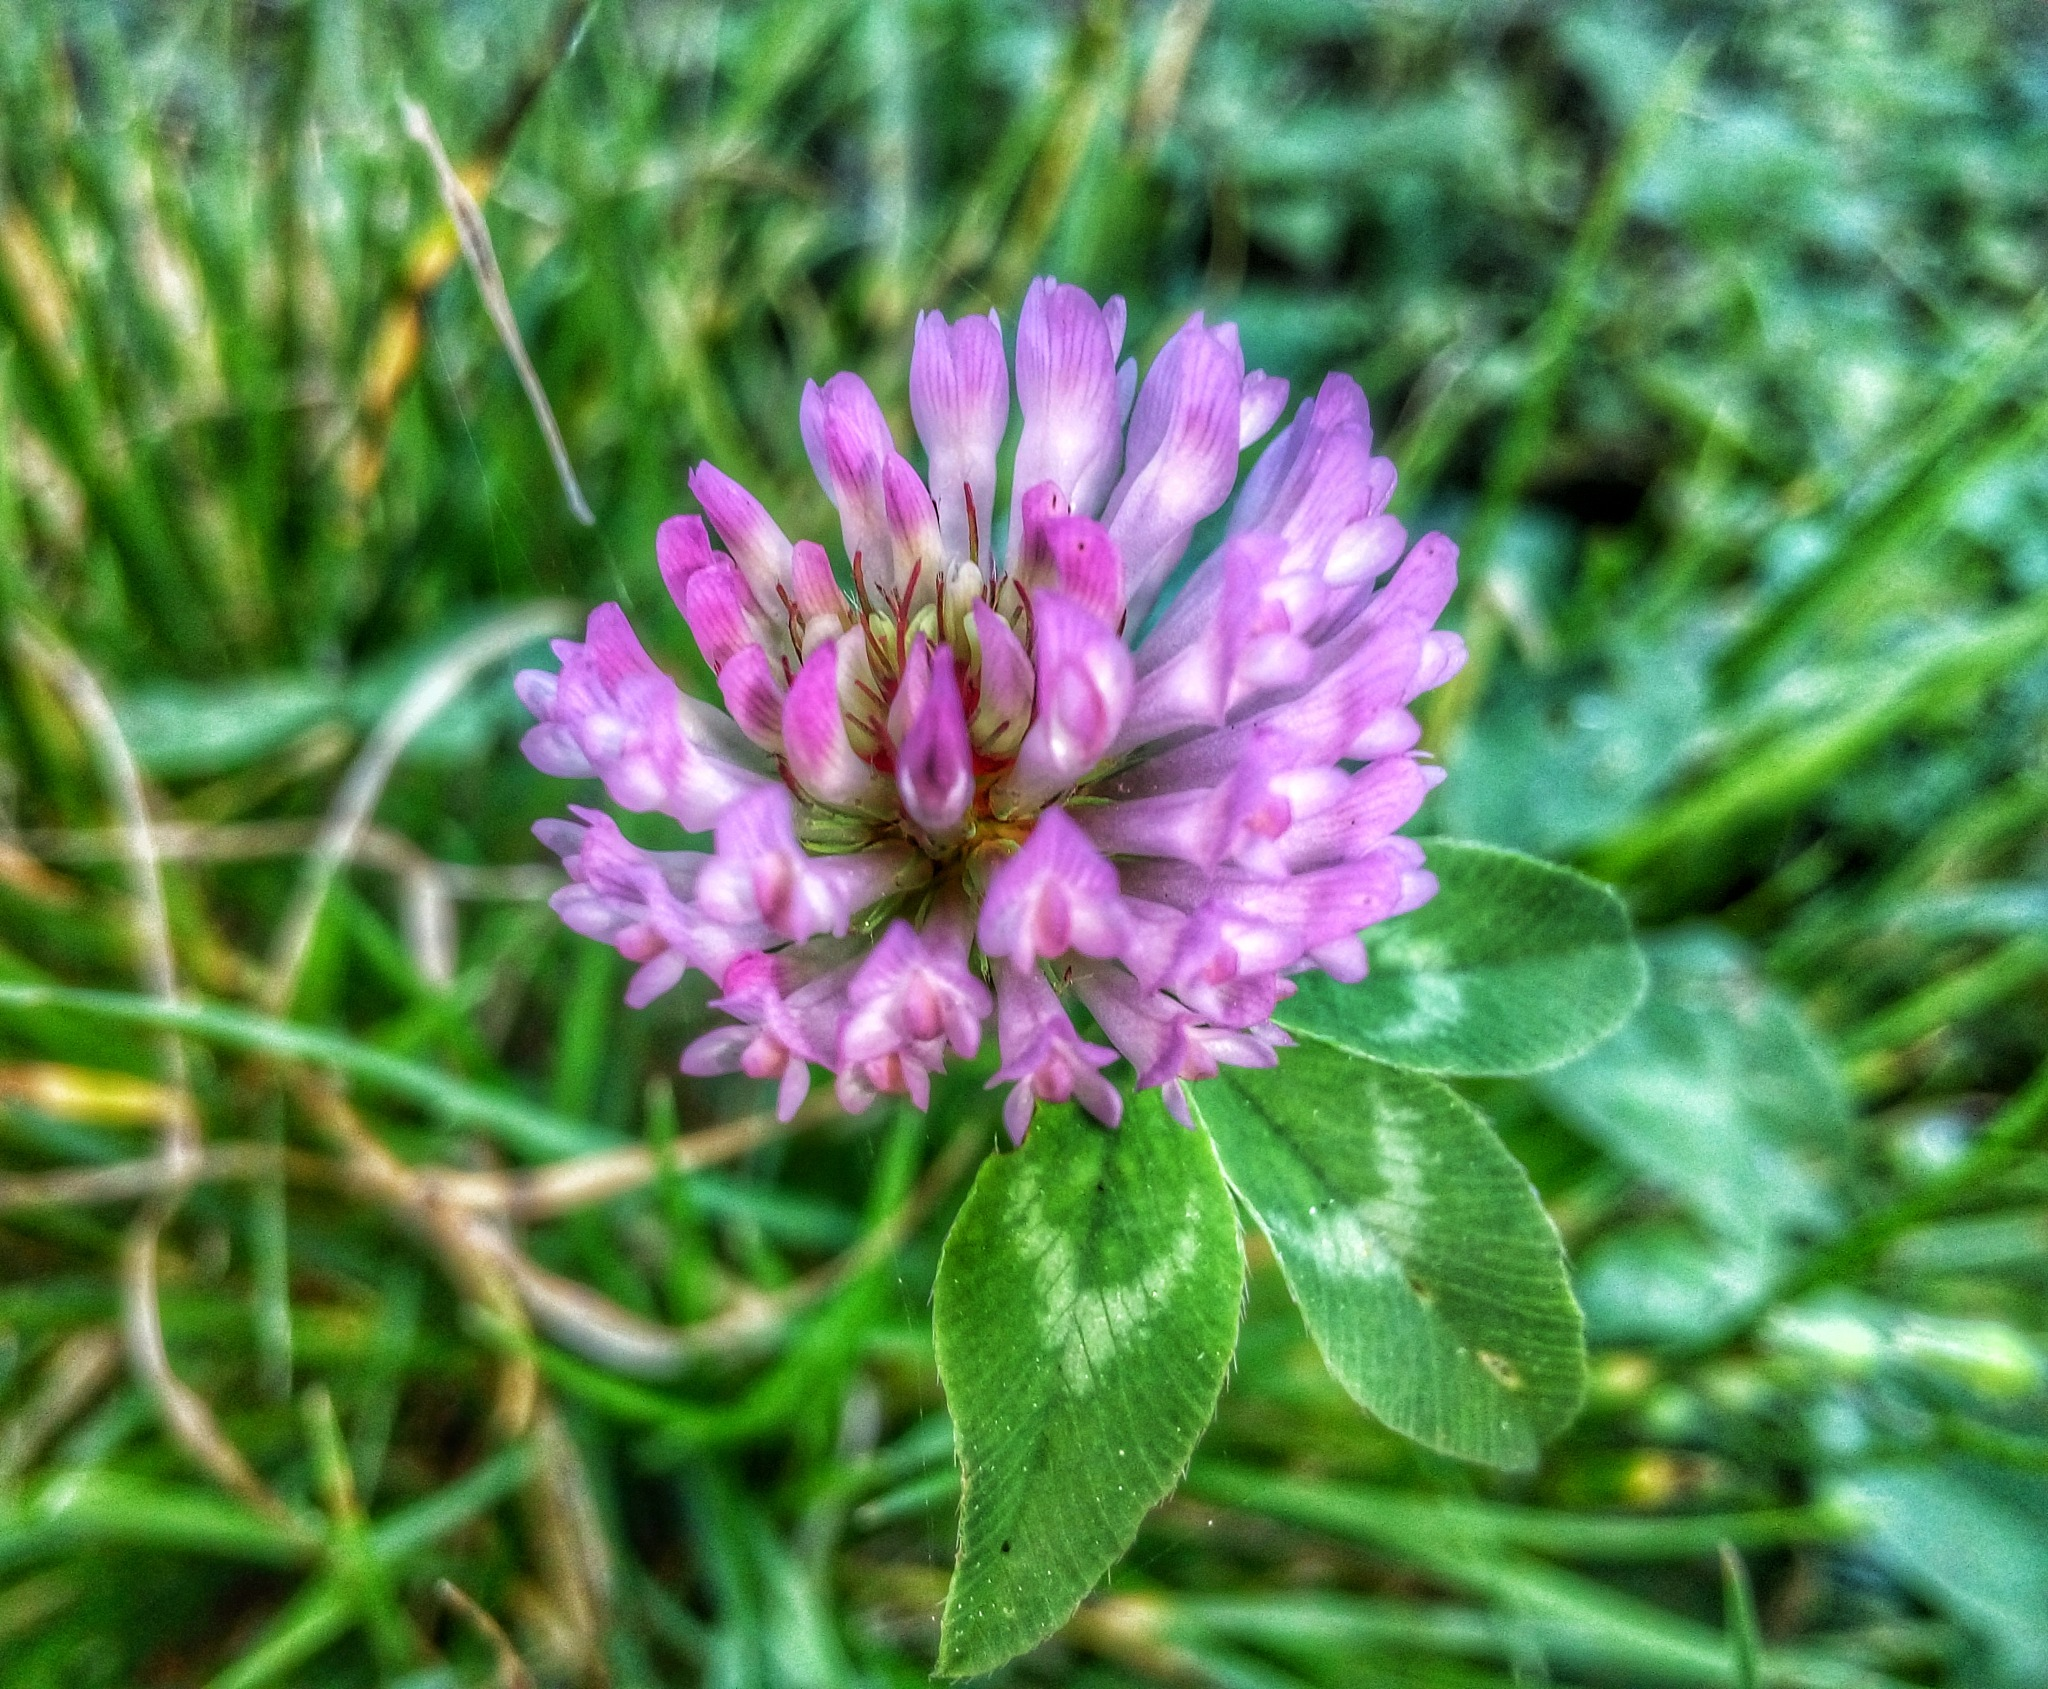 Clover bloom  by SanjaPhotography85